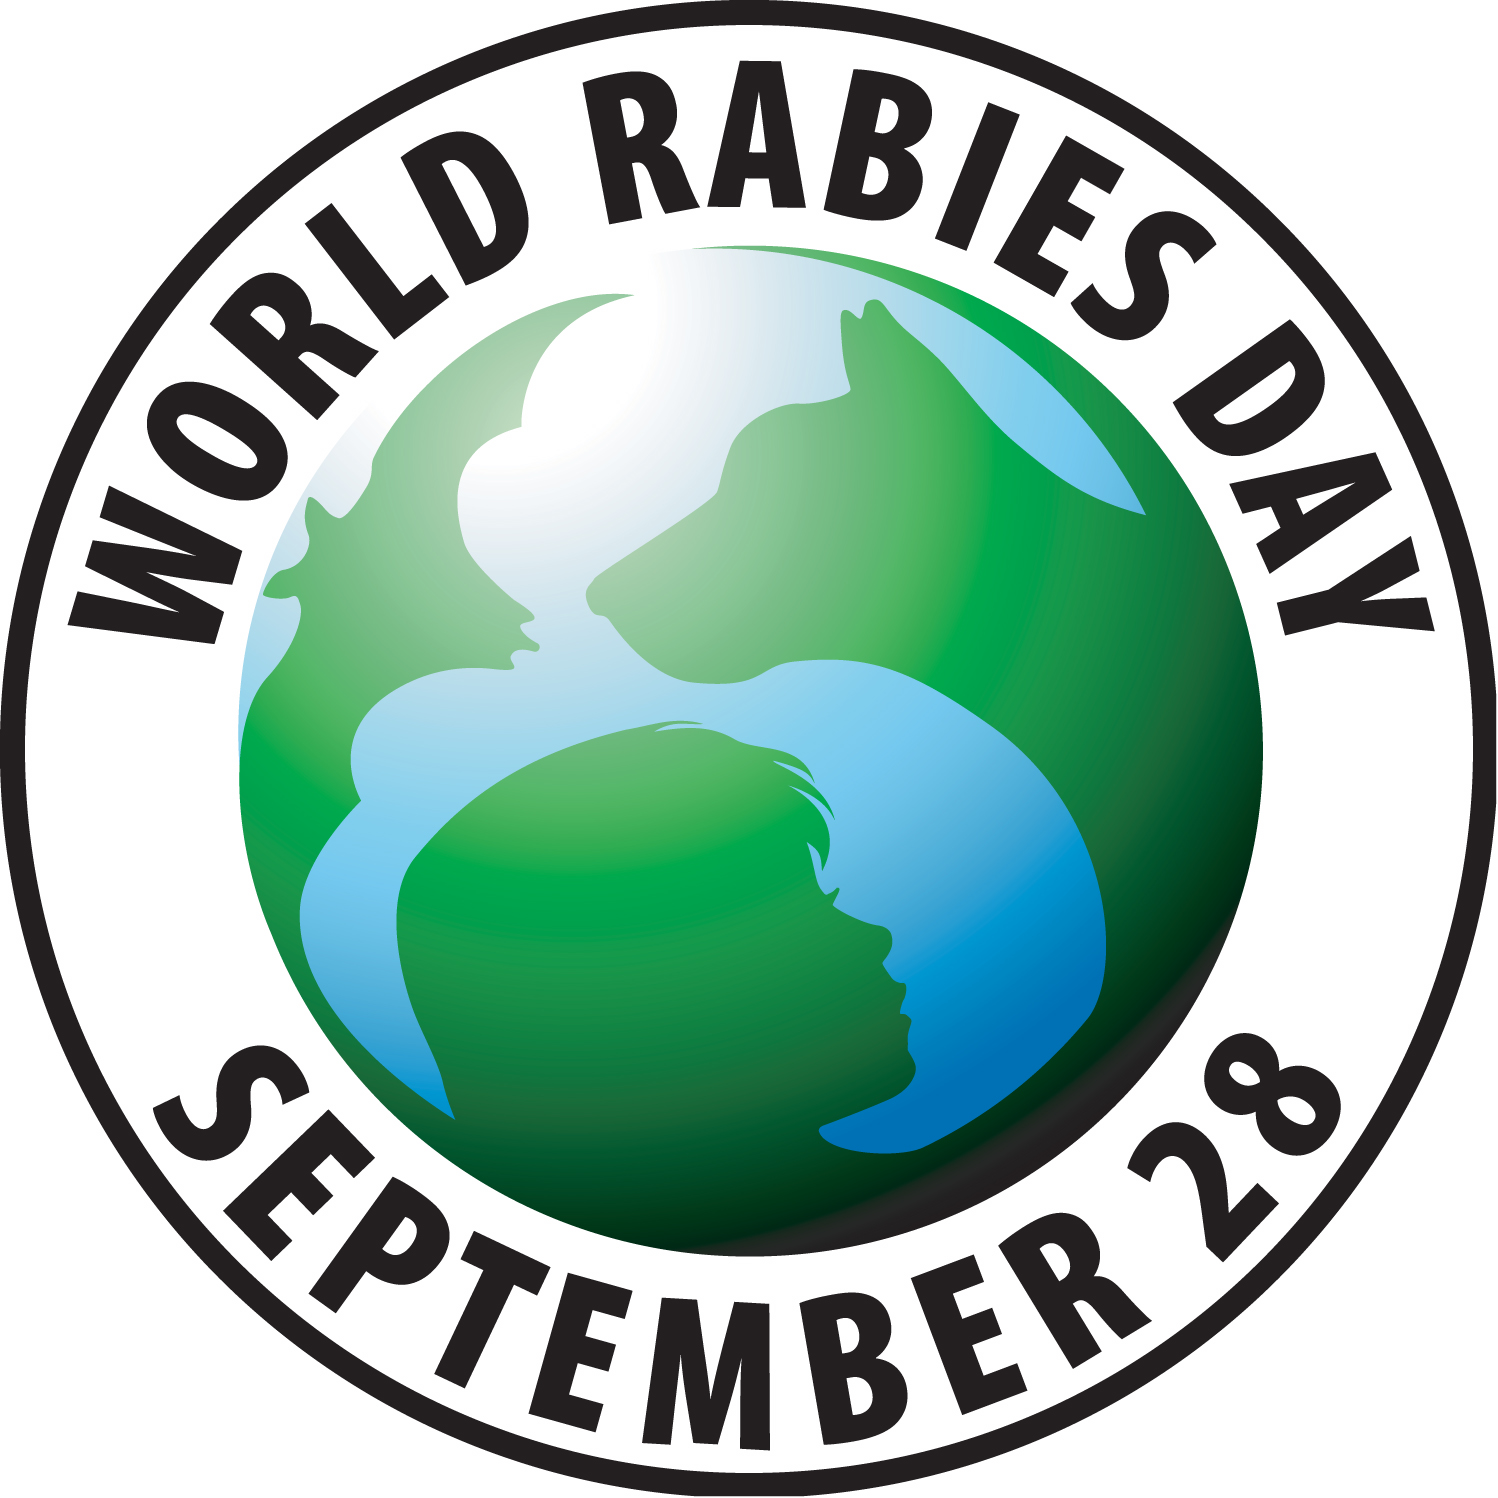 World Rabies Day 2012 on live stream radio or listen